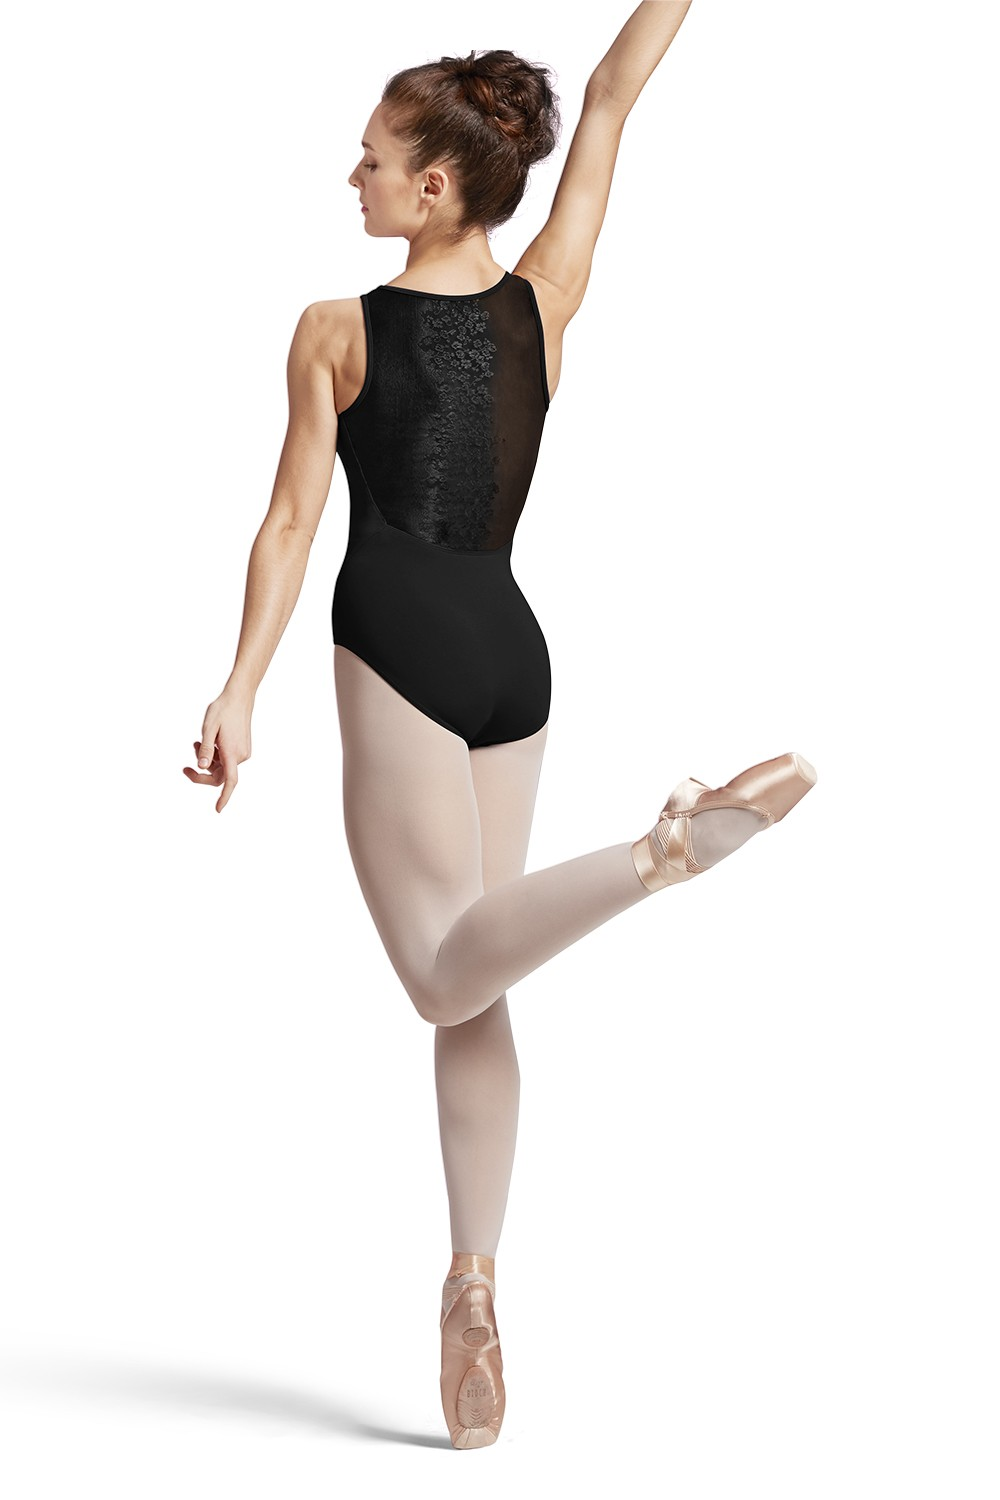 Whitley Womens Tank Leotards